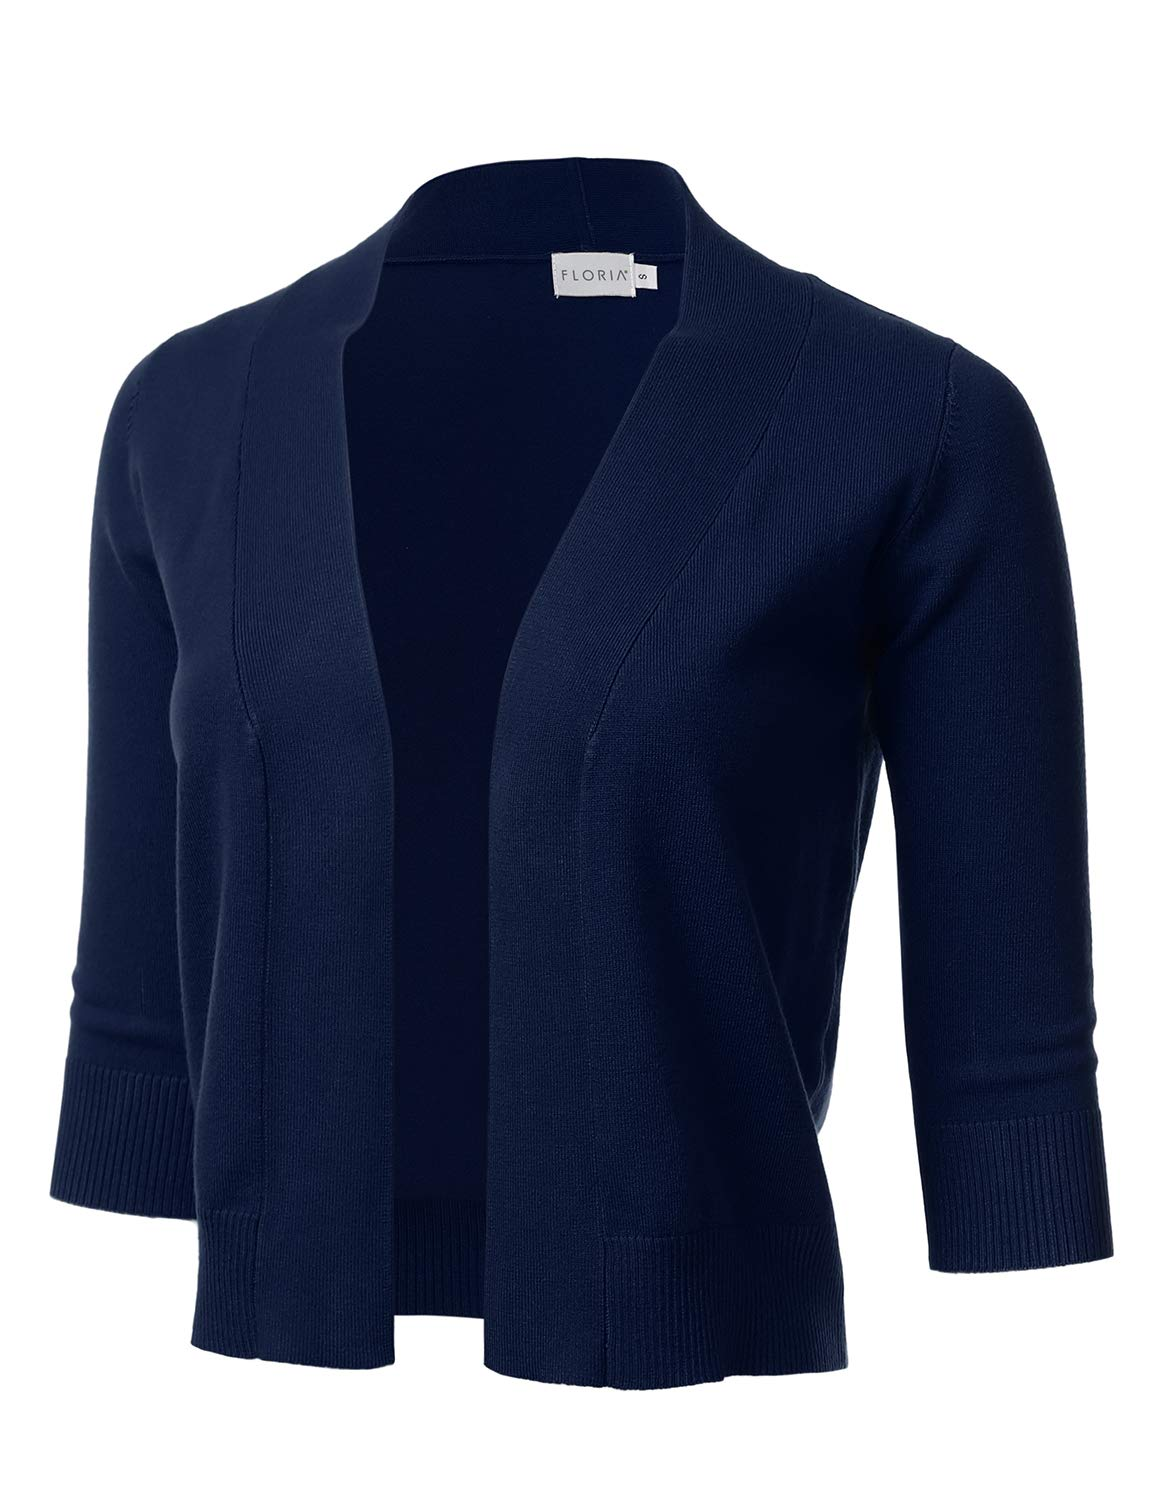 FLORIA Womens Classic 3/4 Sleeve Open Front Cropped Cardigan Navy L by FLORIA